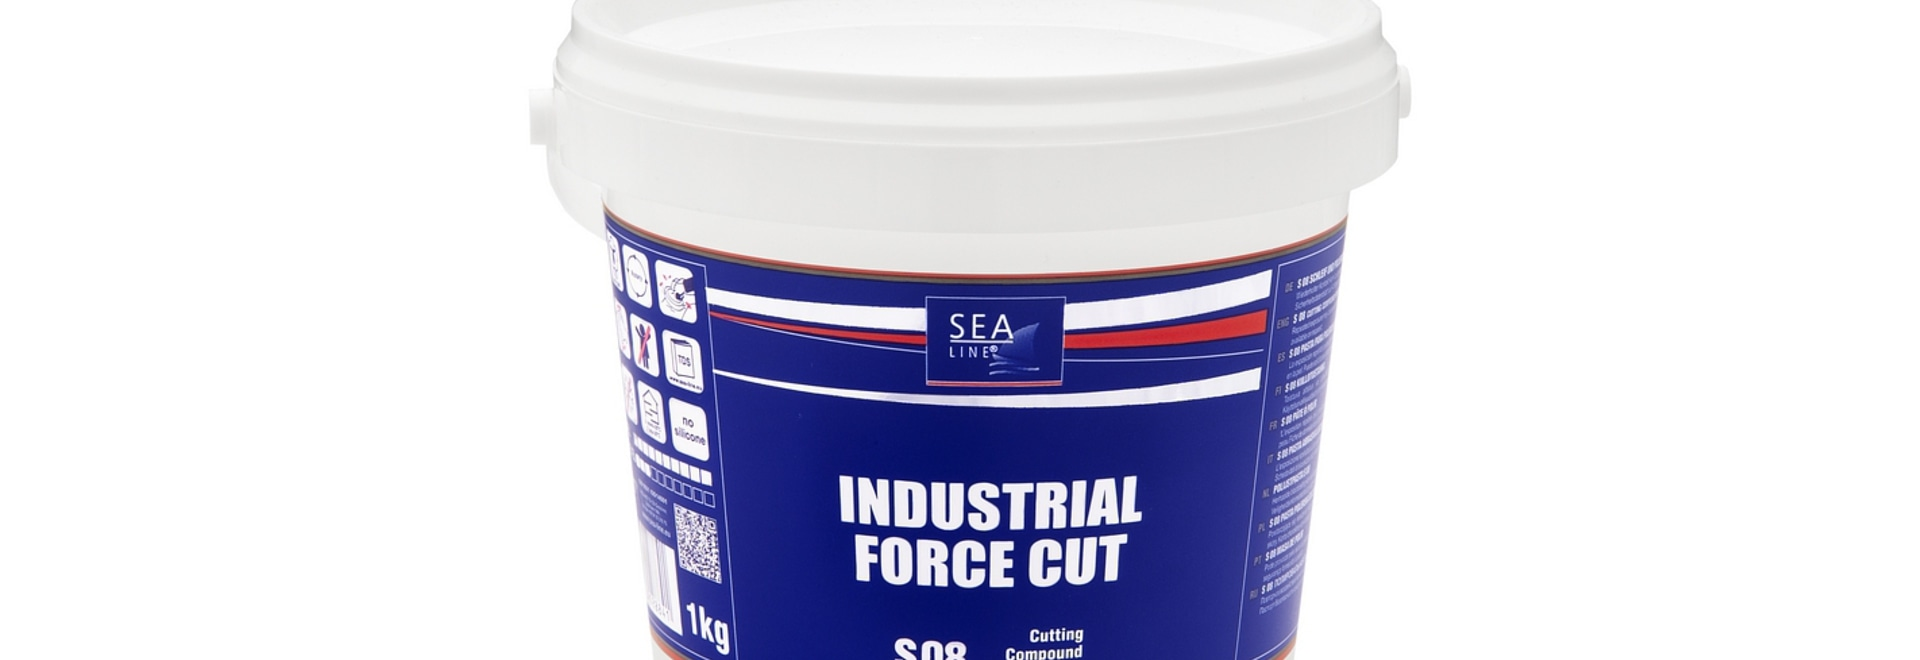 S08 INDUSTRIAL FORCE CUT